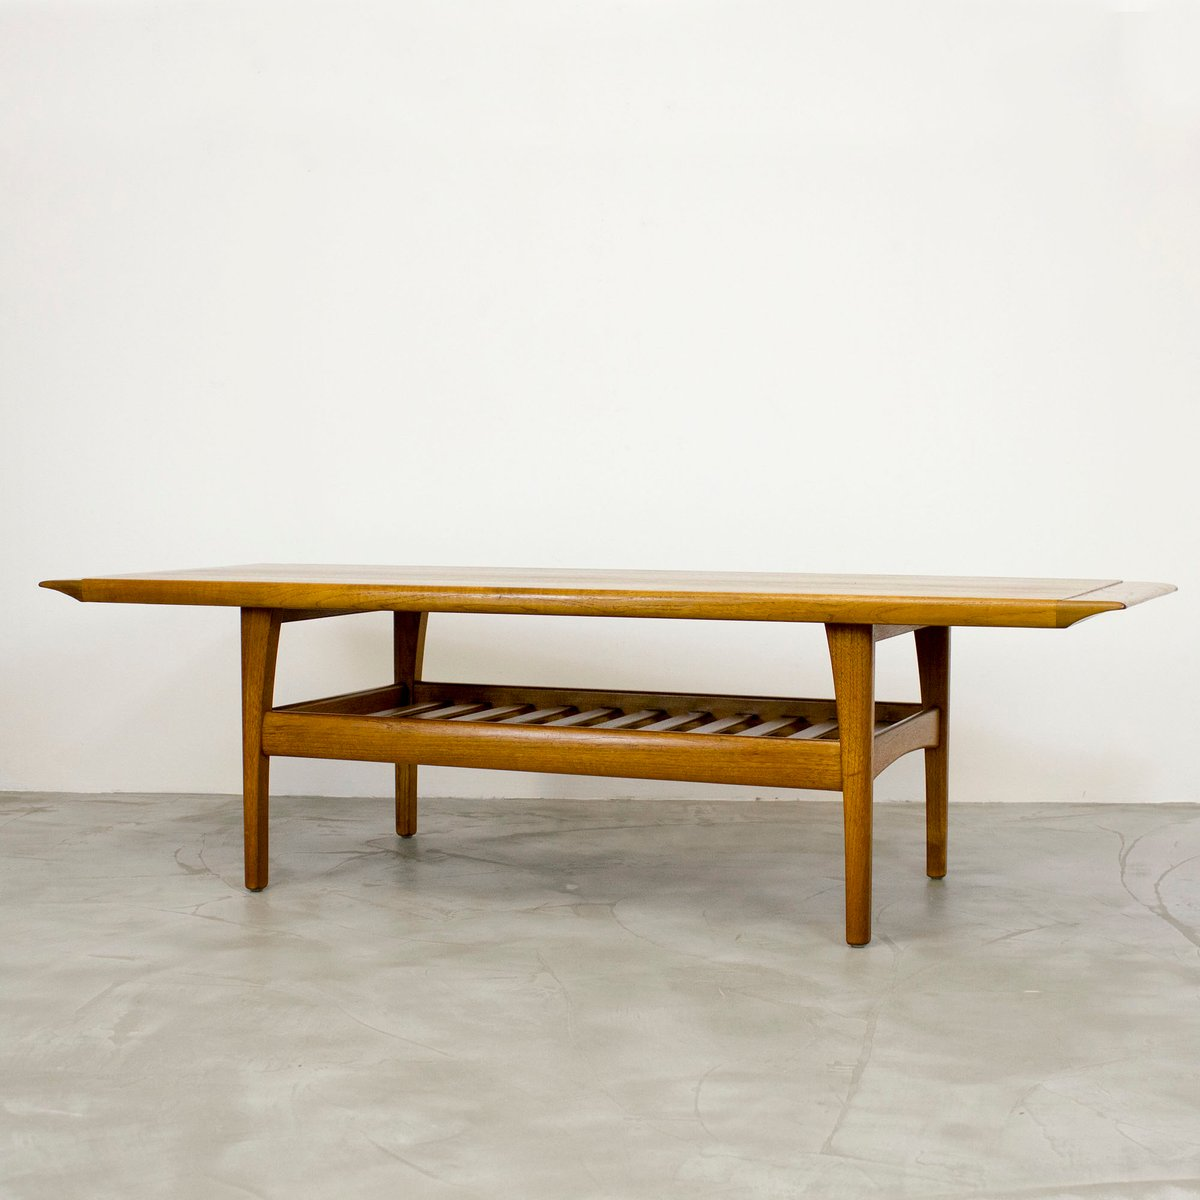 Teak Burger Coffee Table: Danish Teak Coffee Table With Magazine Shelf, 1960s For